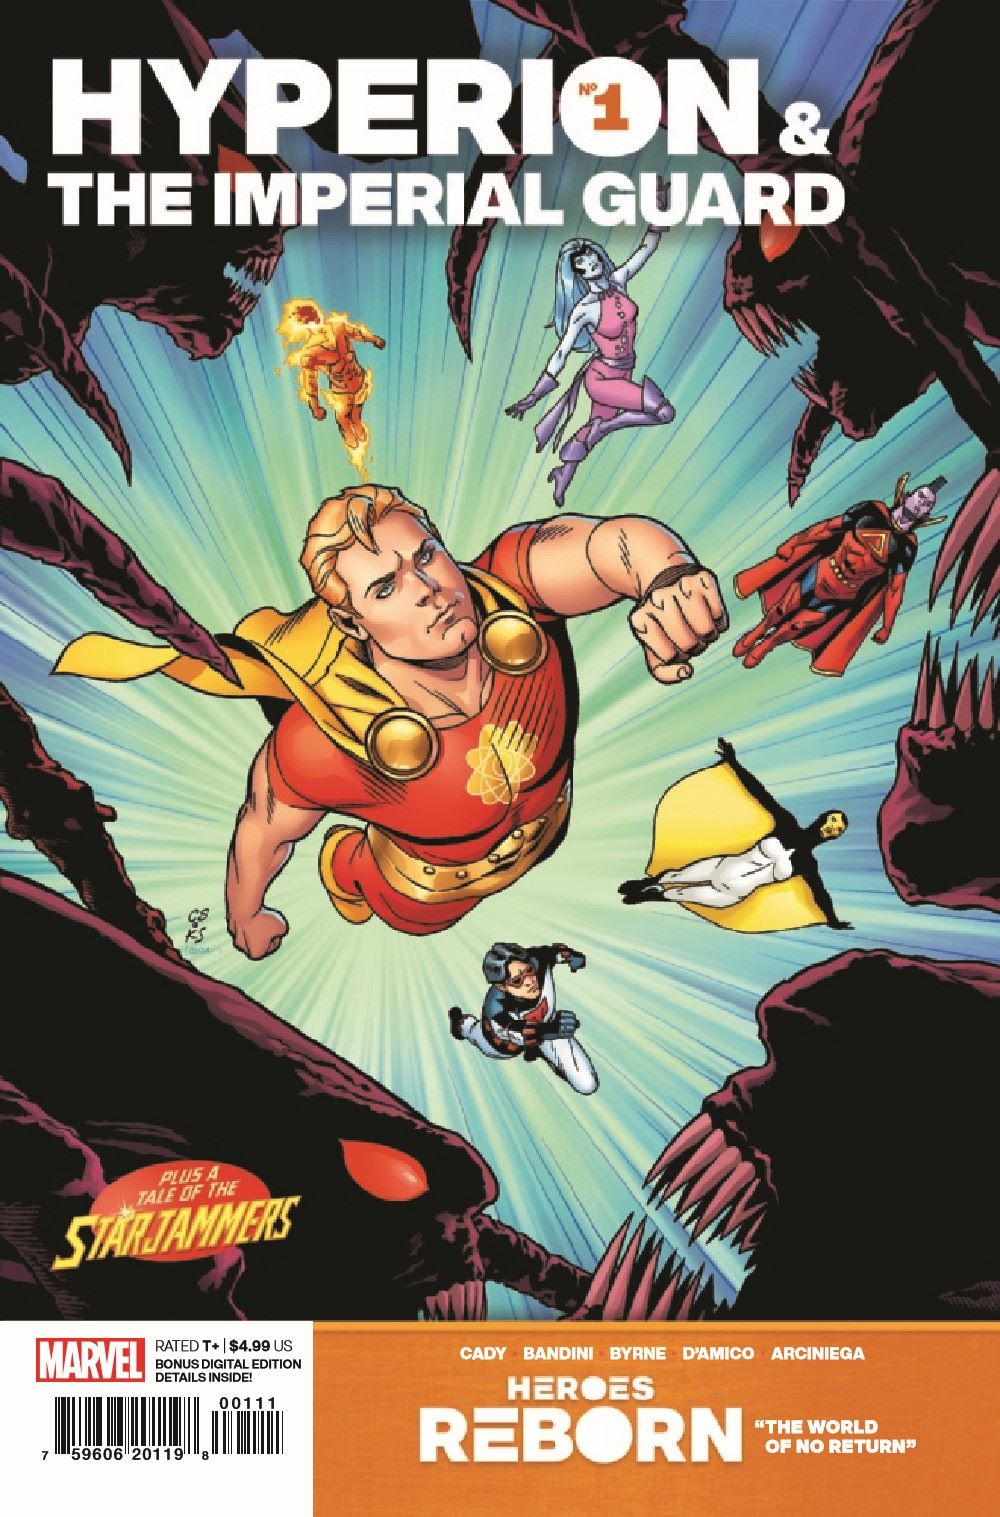 HRHYPIMPG2021001_Preview-1 ComicList Previews: HEROES REBORN HYPERION AND THE IMPERIAL GUARD #1